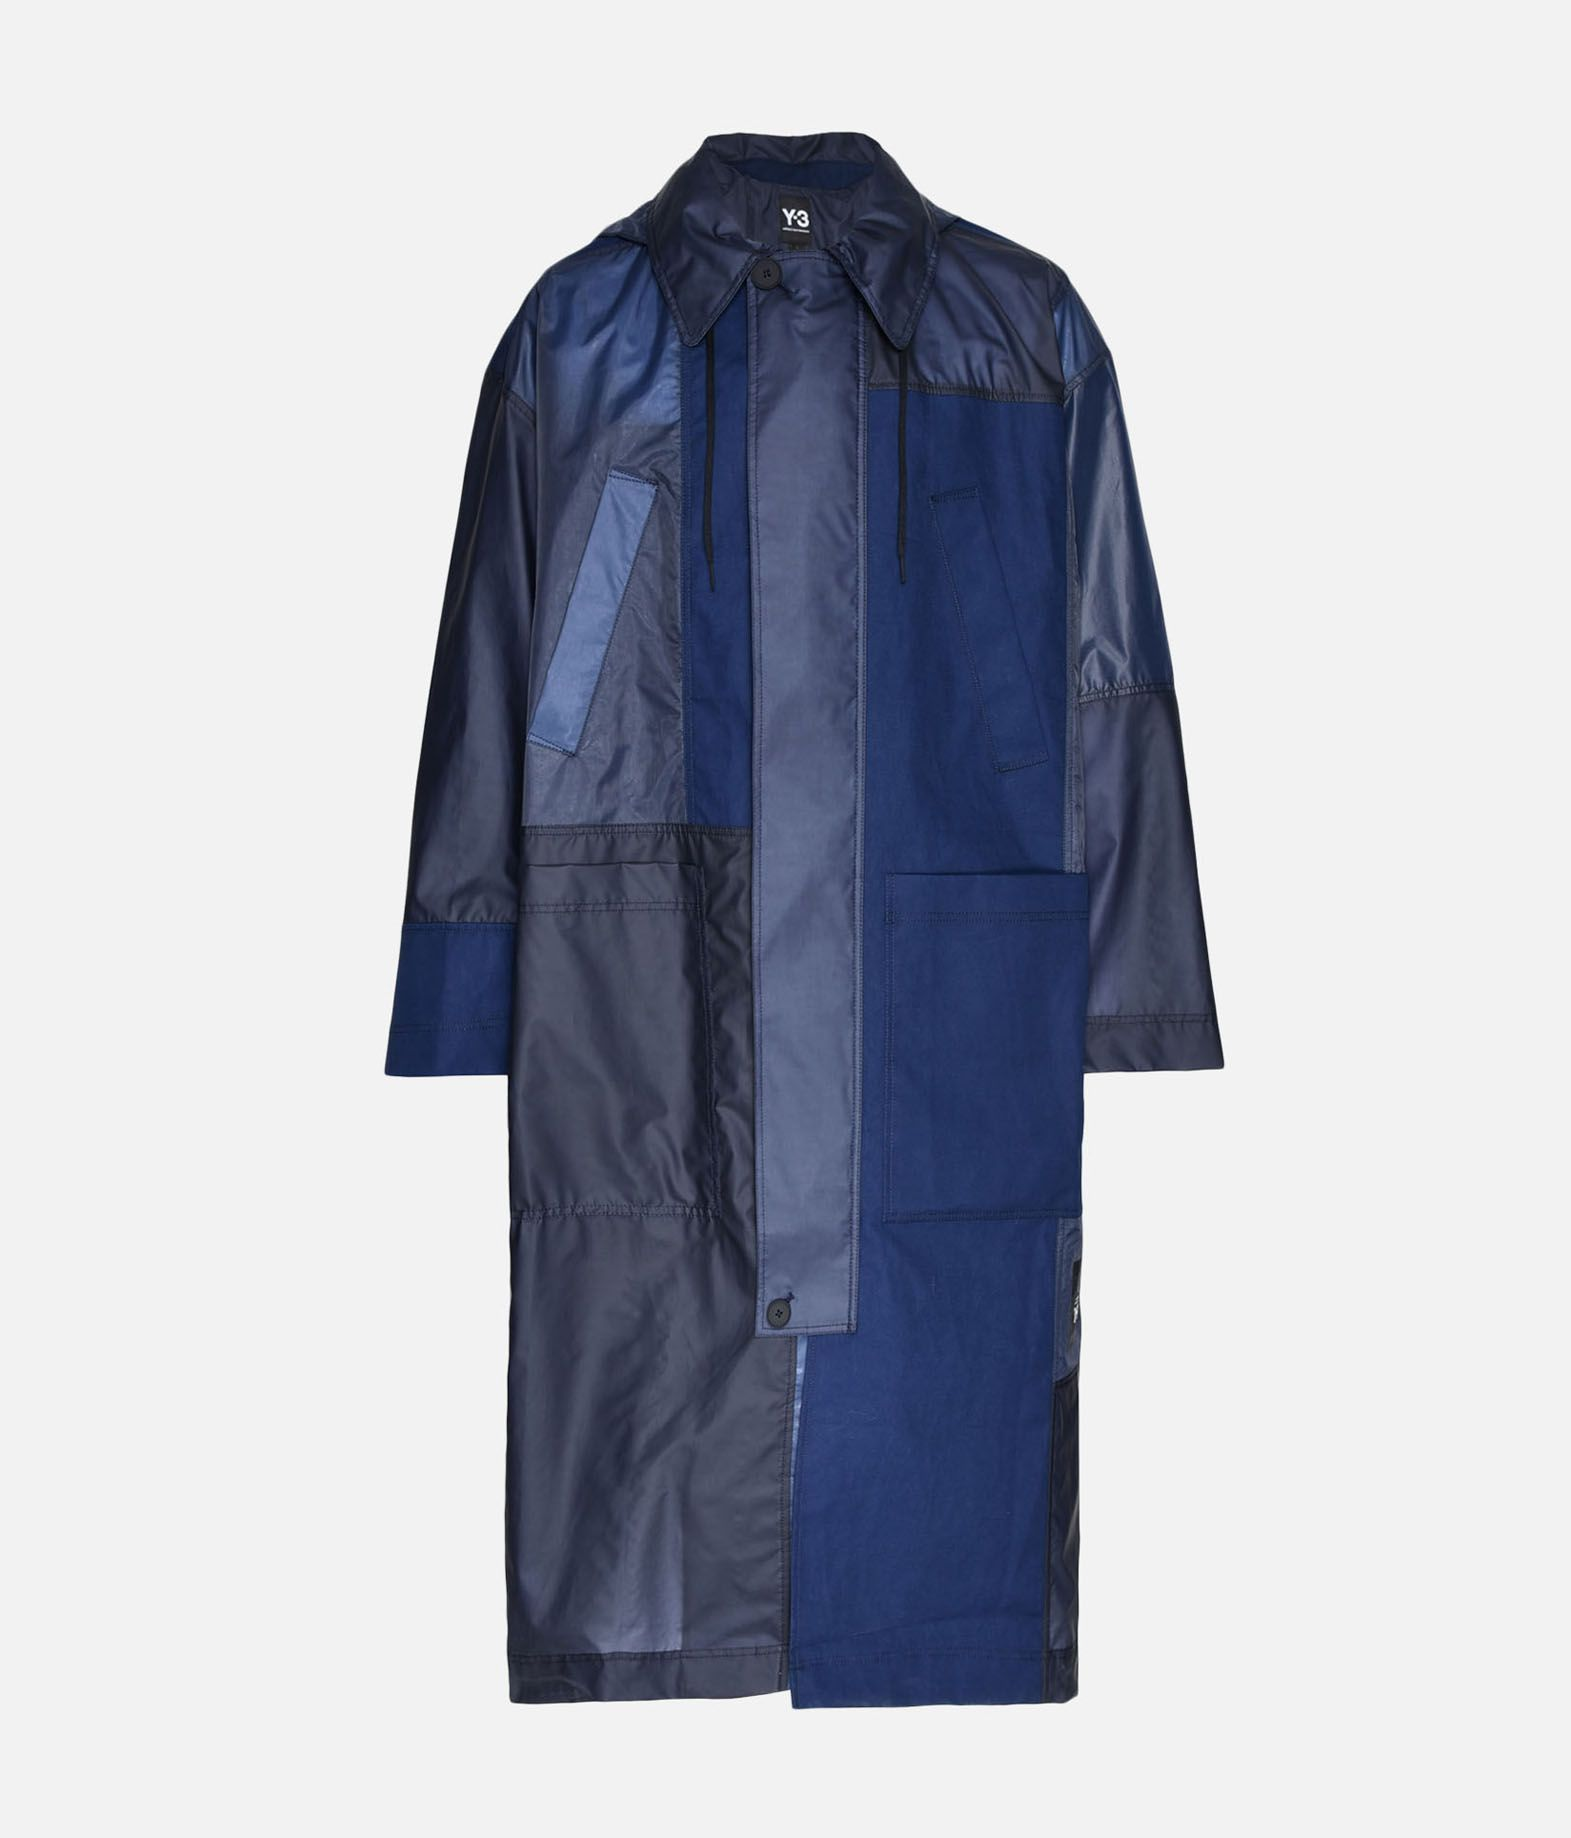 Y-3 Y-3 Patchwork Long Coat Coat Man f